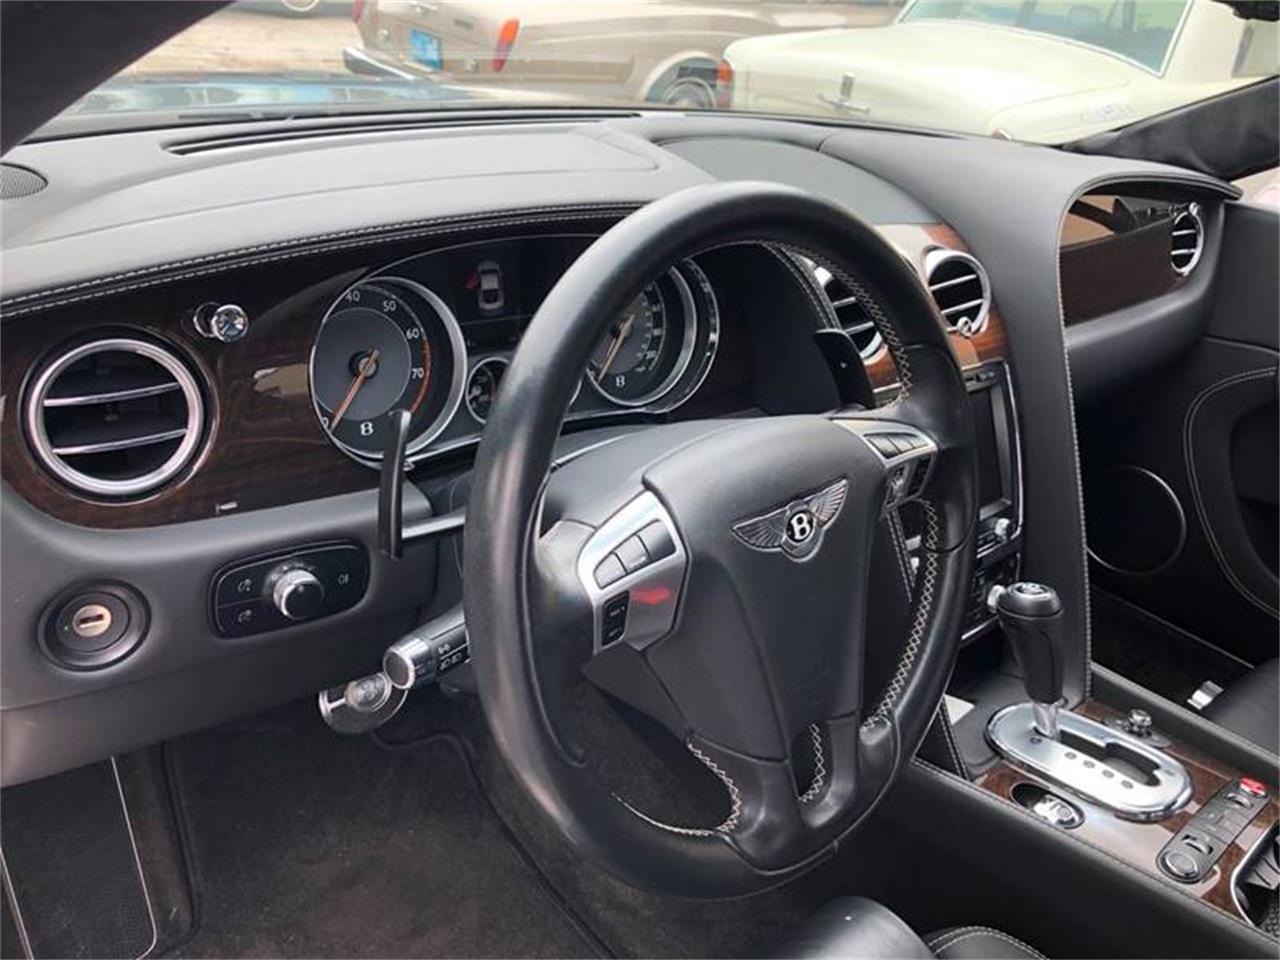 2013 Bentley Continental (CC-1300907) for sale in Fort Lauderdale, Florida